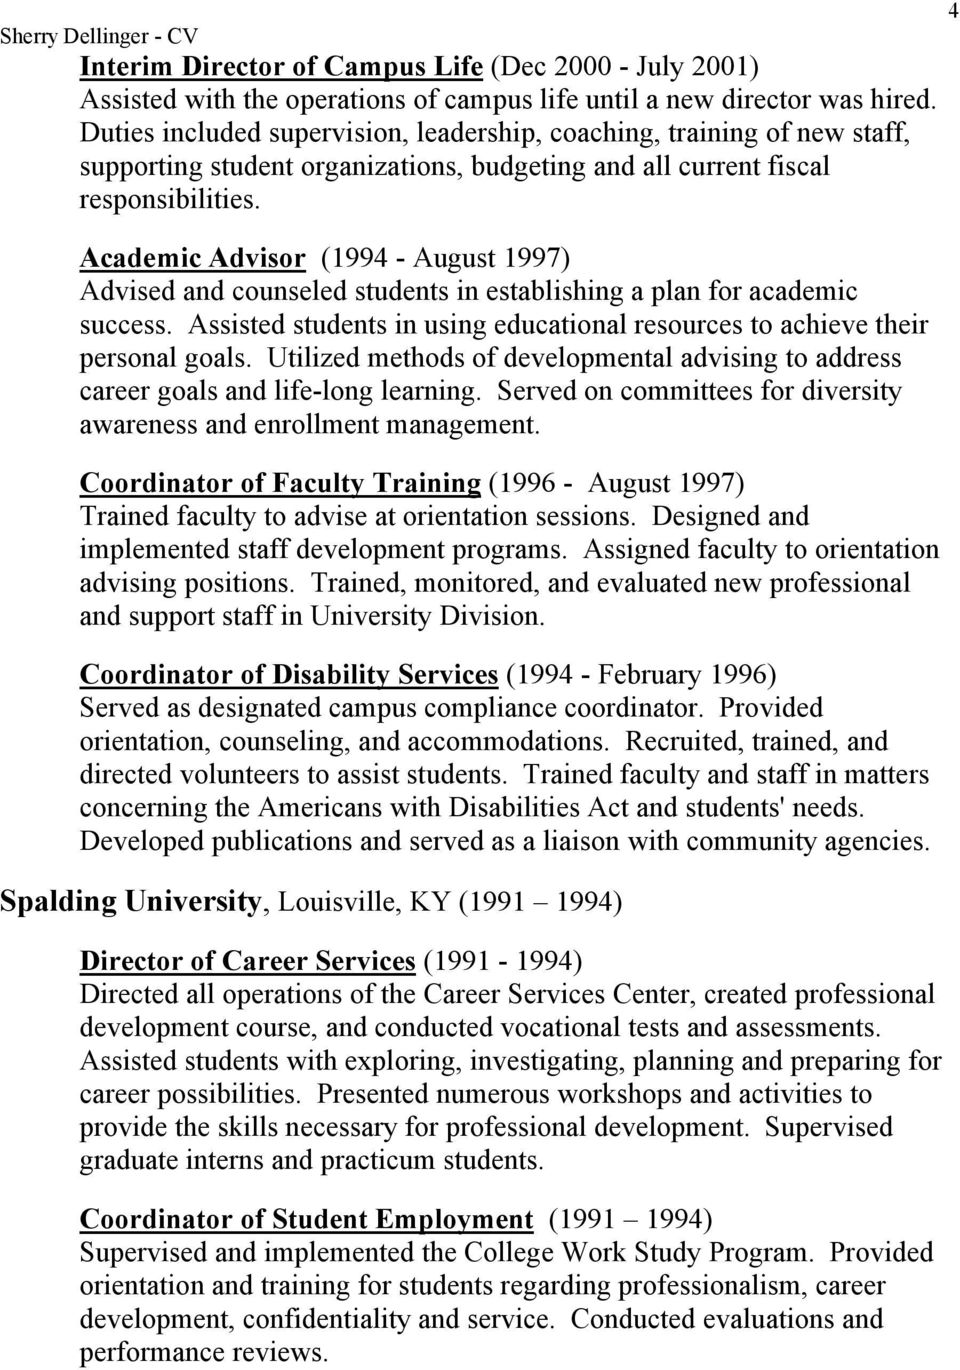 Academic Advisor (1994 - August 1997) Advised and counseled students in establishing a plan for academic success. Assisted students in using educational resources to achieve their personal goals.